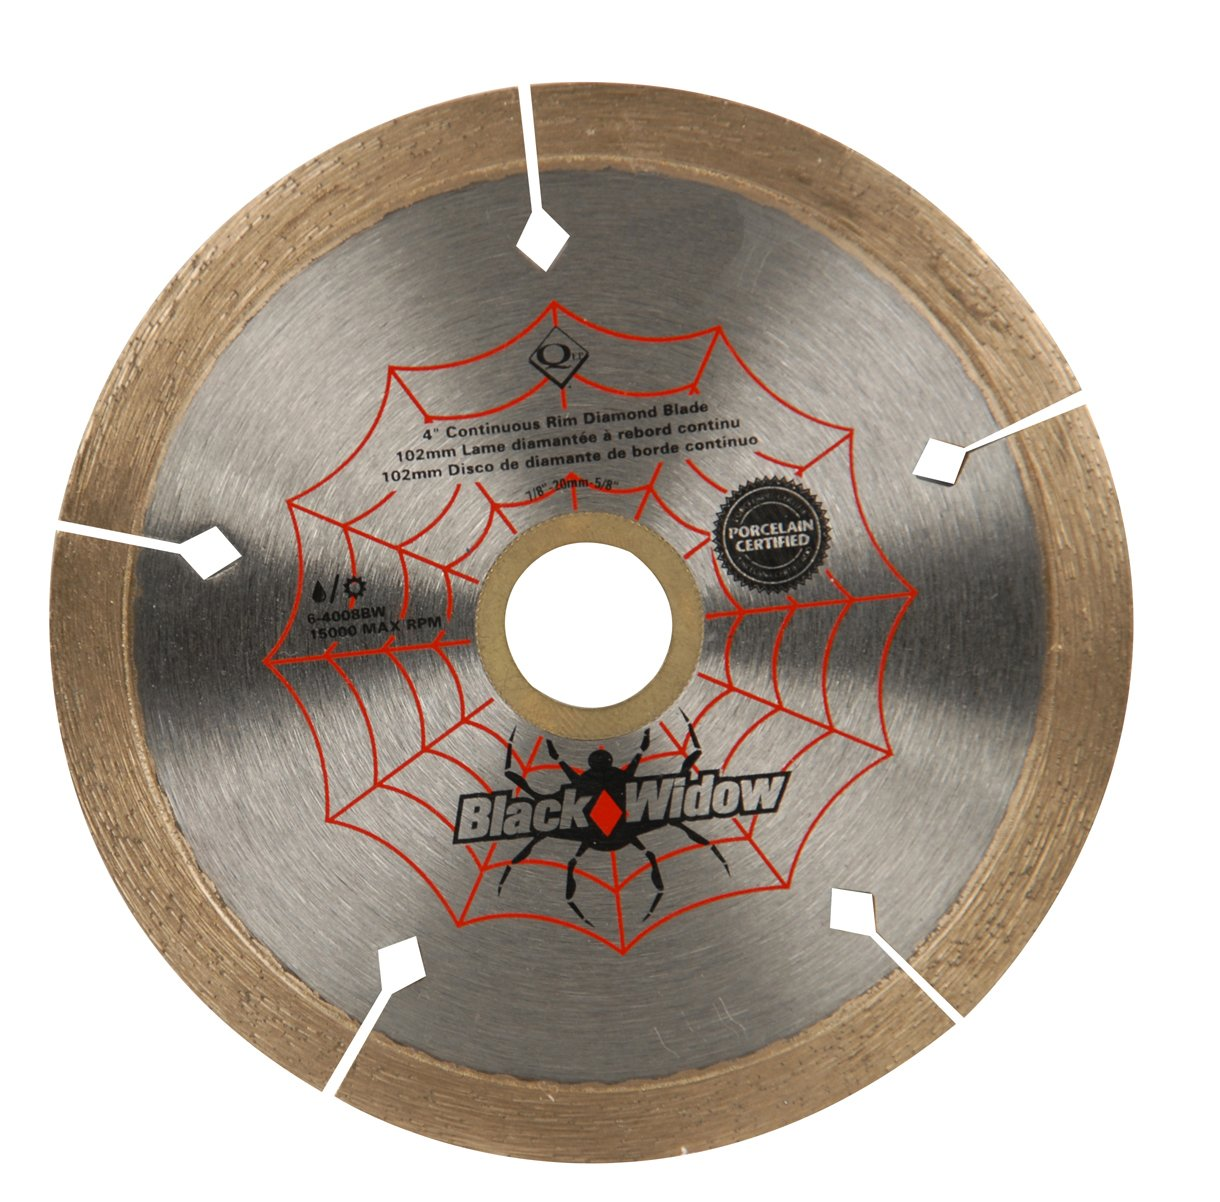 QEP 6-4008BW 4-Inch Black Widow Micro-Segmented Rim Diamond Blade, 5/8-7/8-Inch Arbor, Wet/Dry Cutting, 15000 Maximum RPM